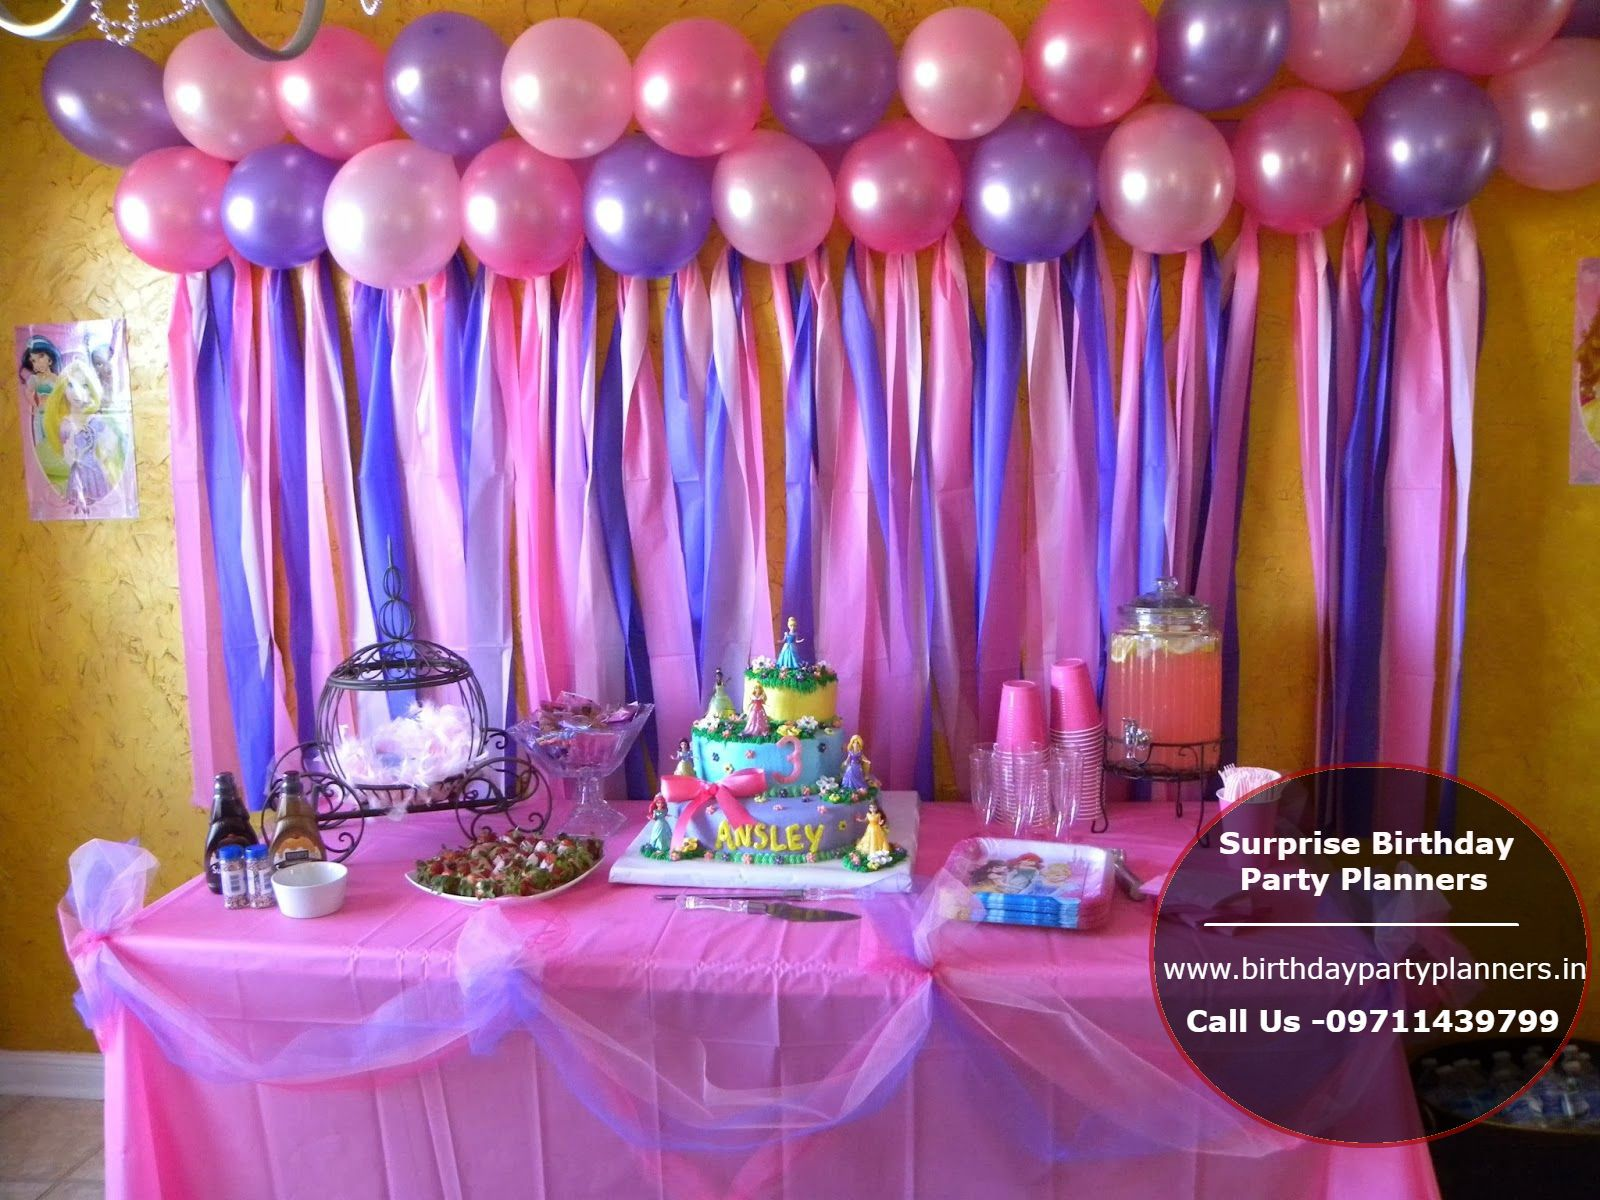 Pin By Surprise Birthday Party Planners On Birthday Return